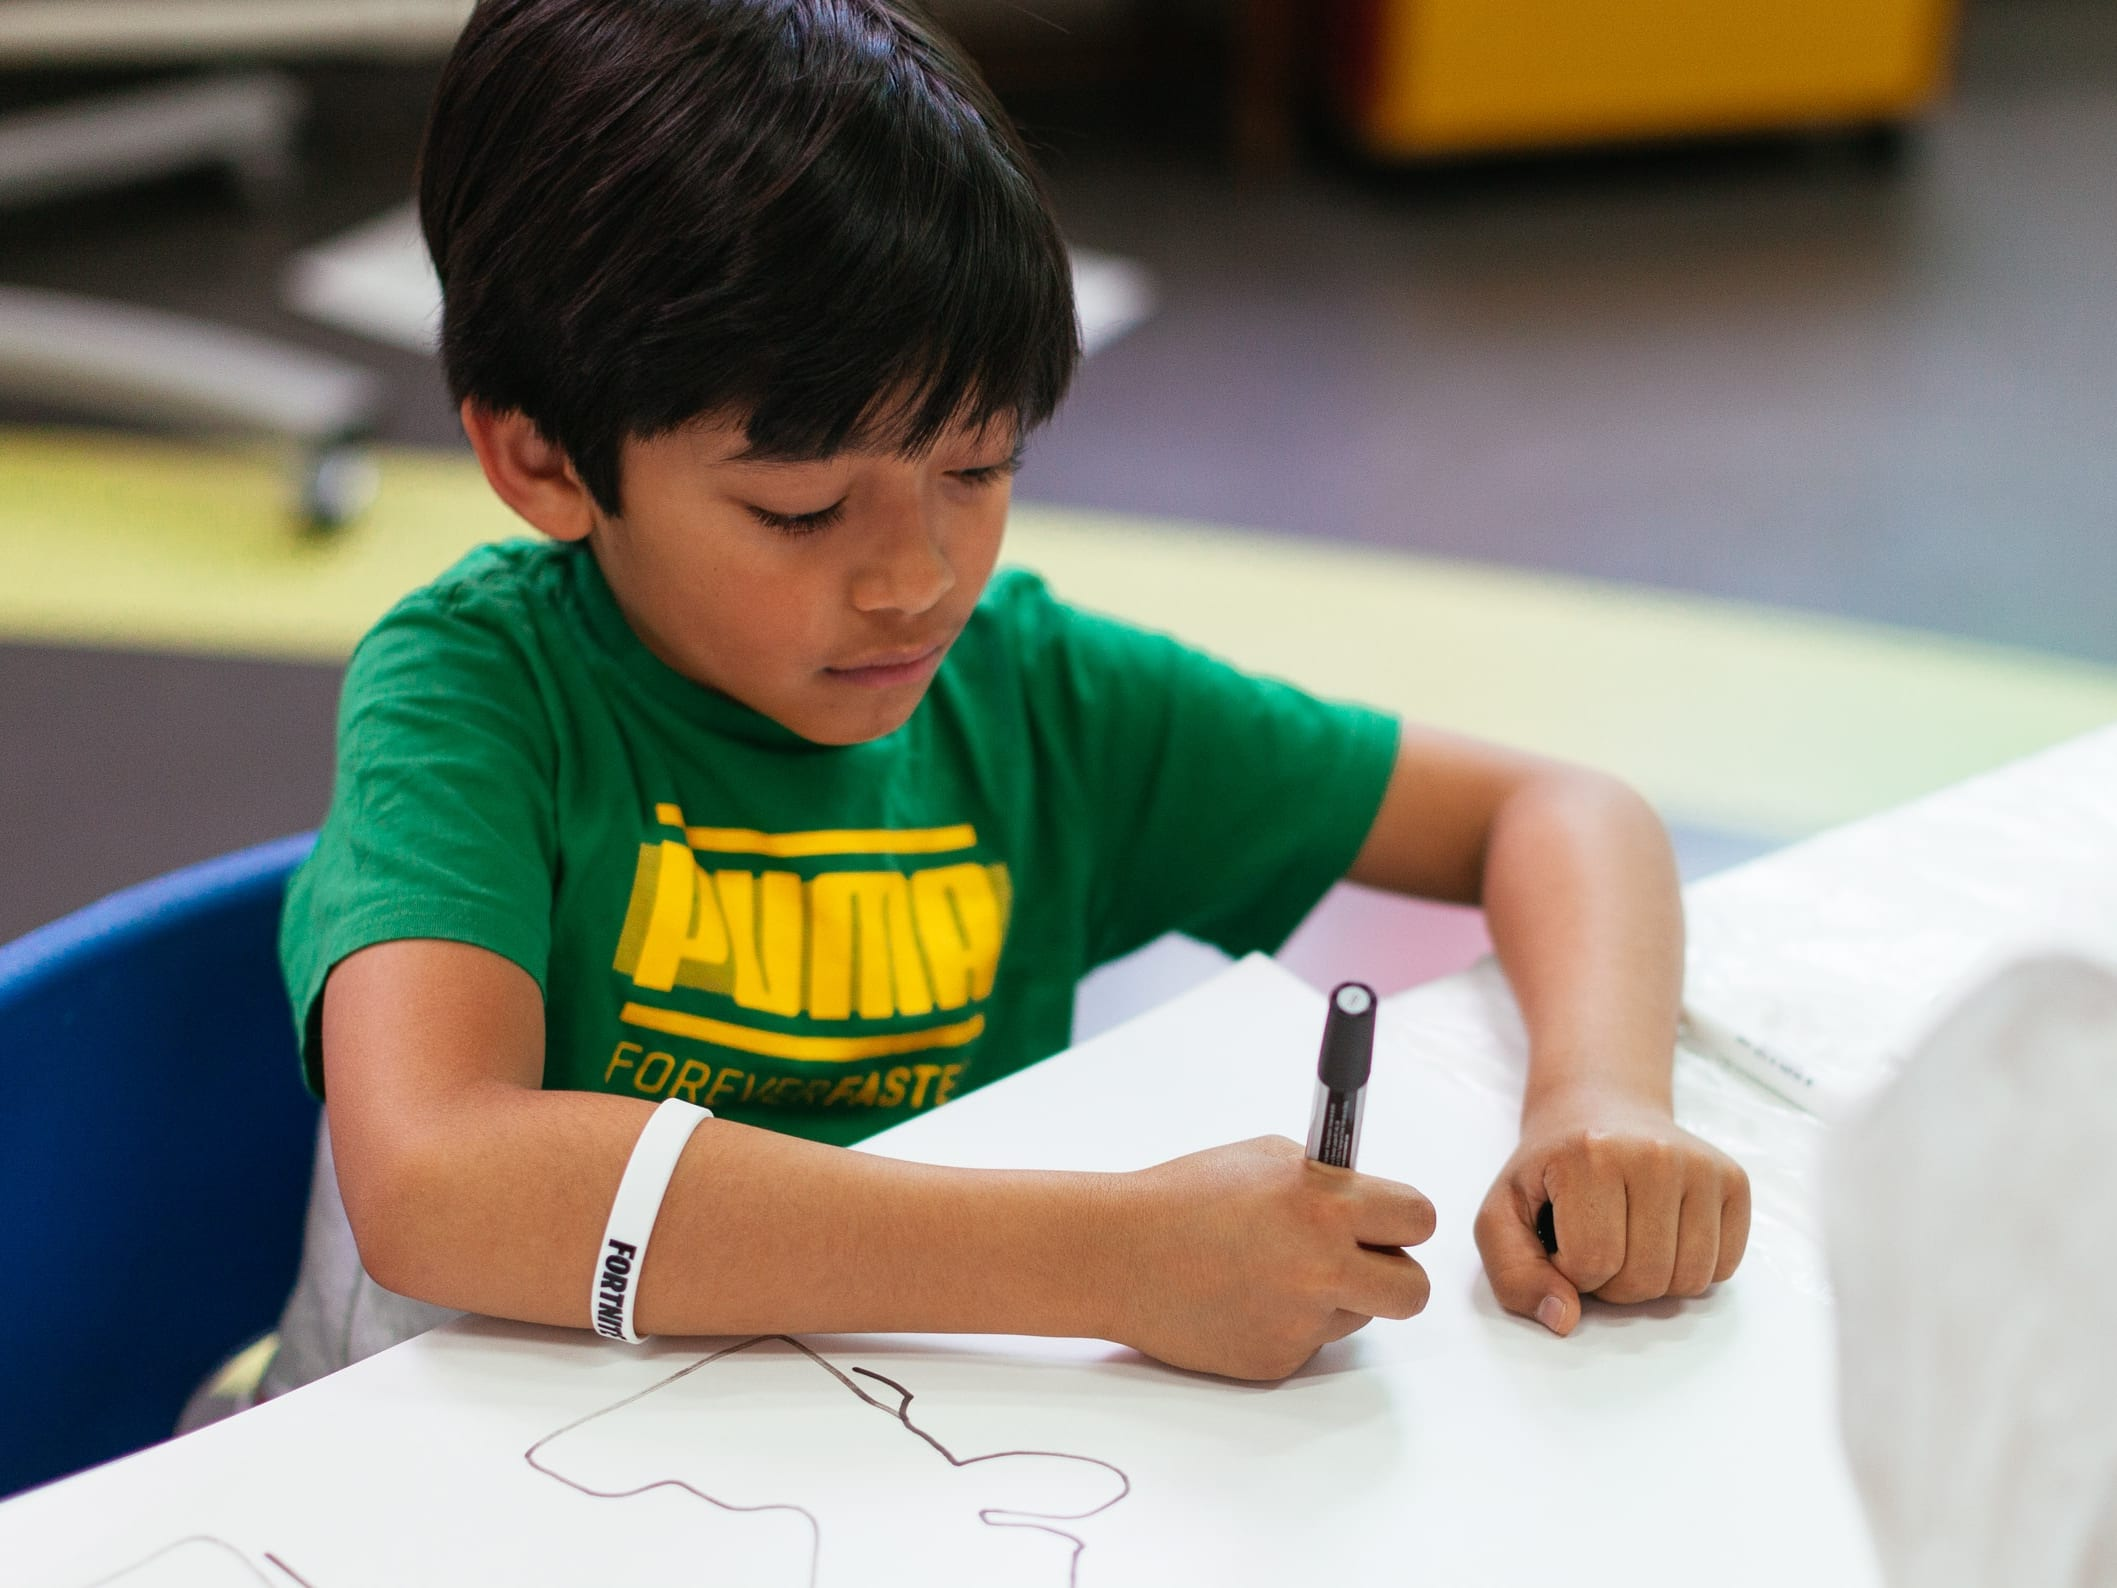 Online art classes for 7-11 year olds